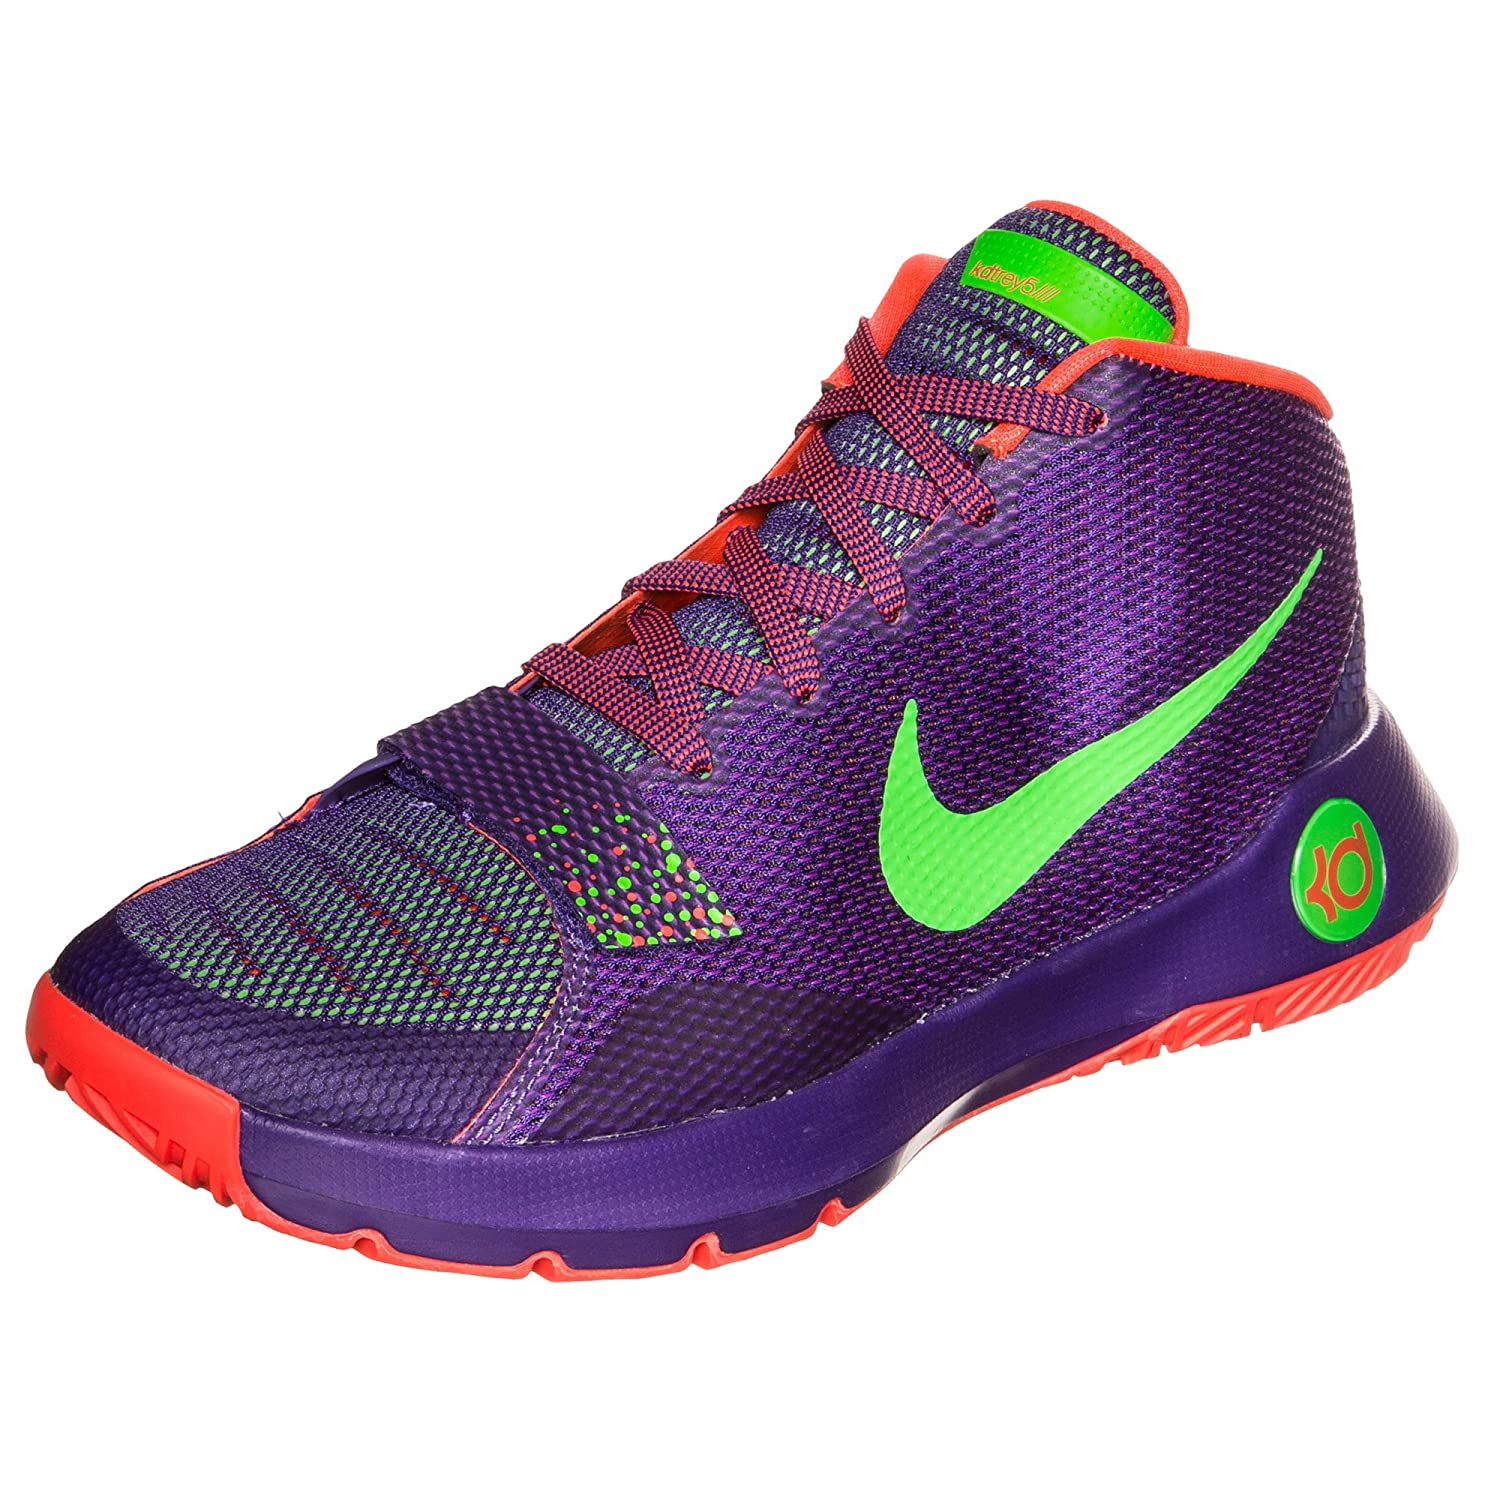 2962db39b9d0dd ... real nike kd trey 5 iii v 3 men basketball shoes new court purple 10.5  50 ...